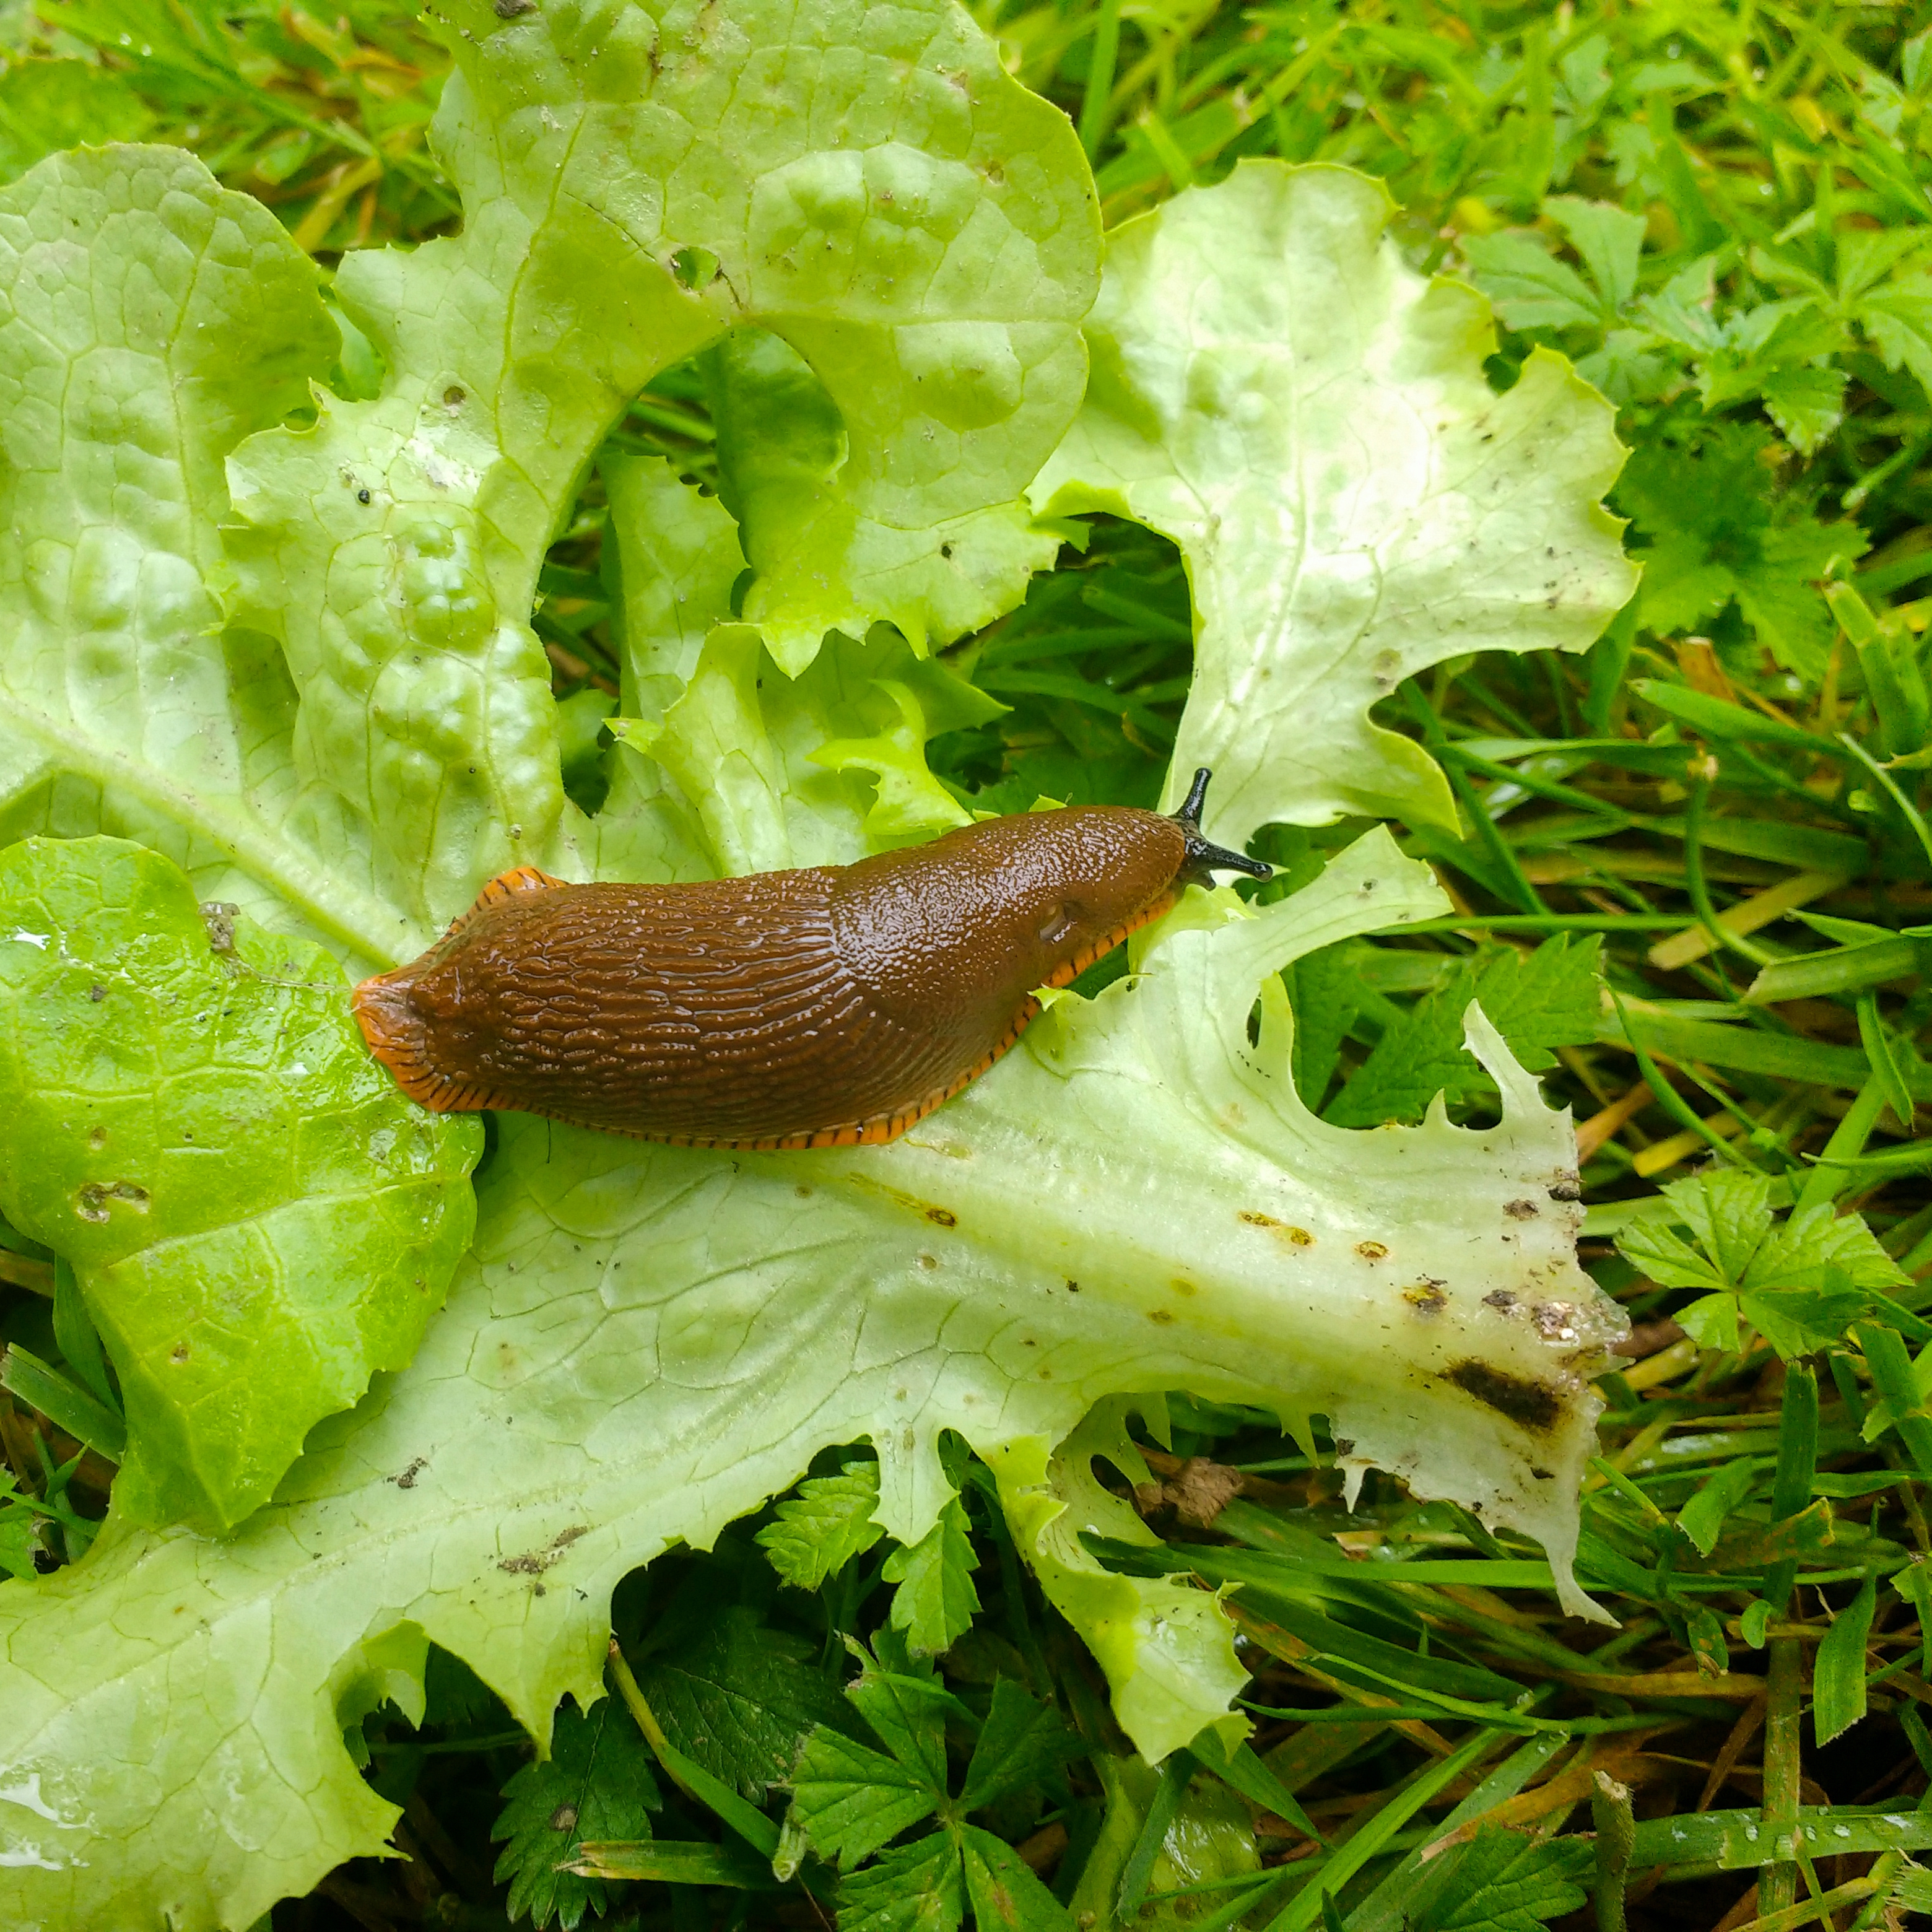 a closeup of a snail or slug crawling on a lettuce leaf representing vegetable pests and parasites